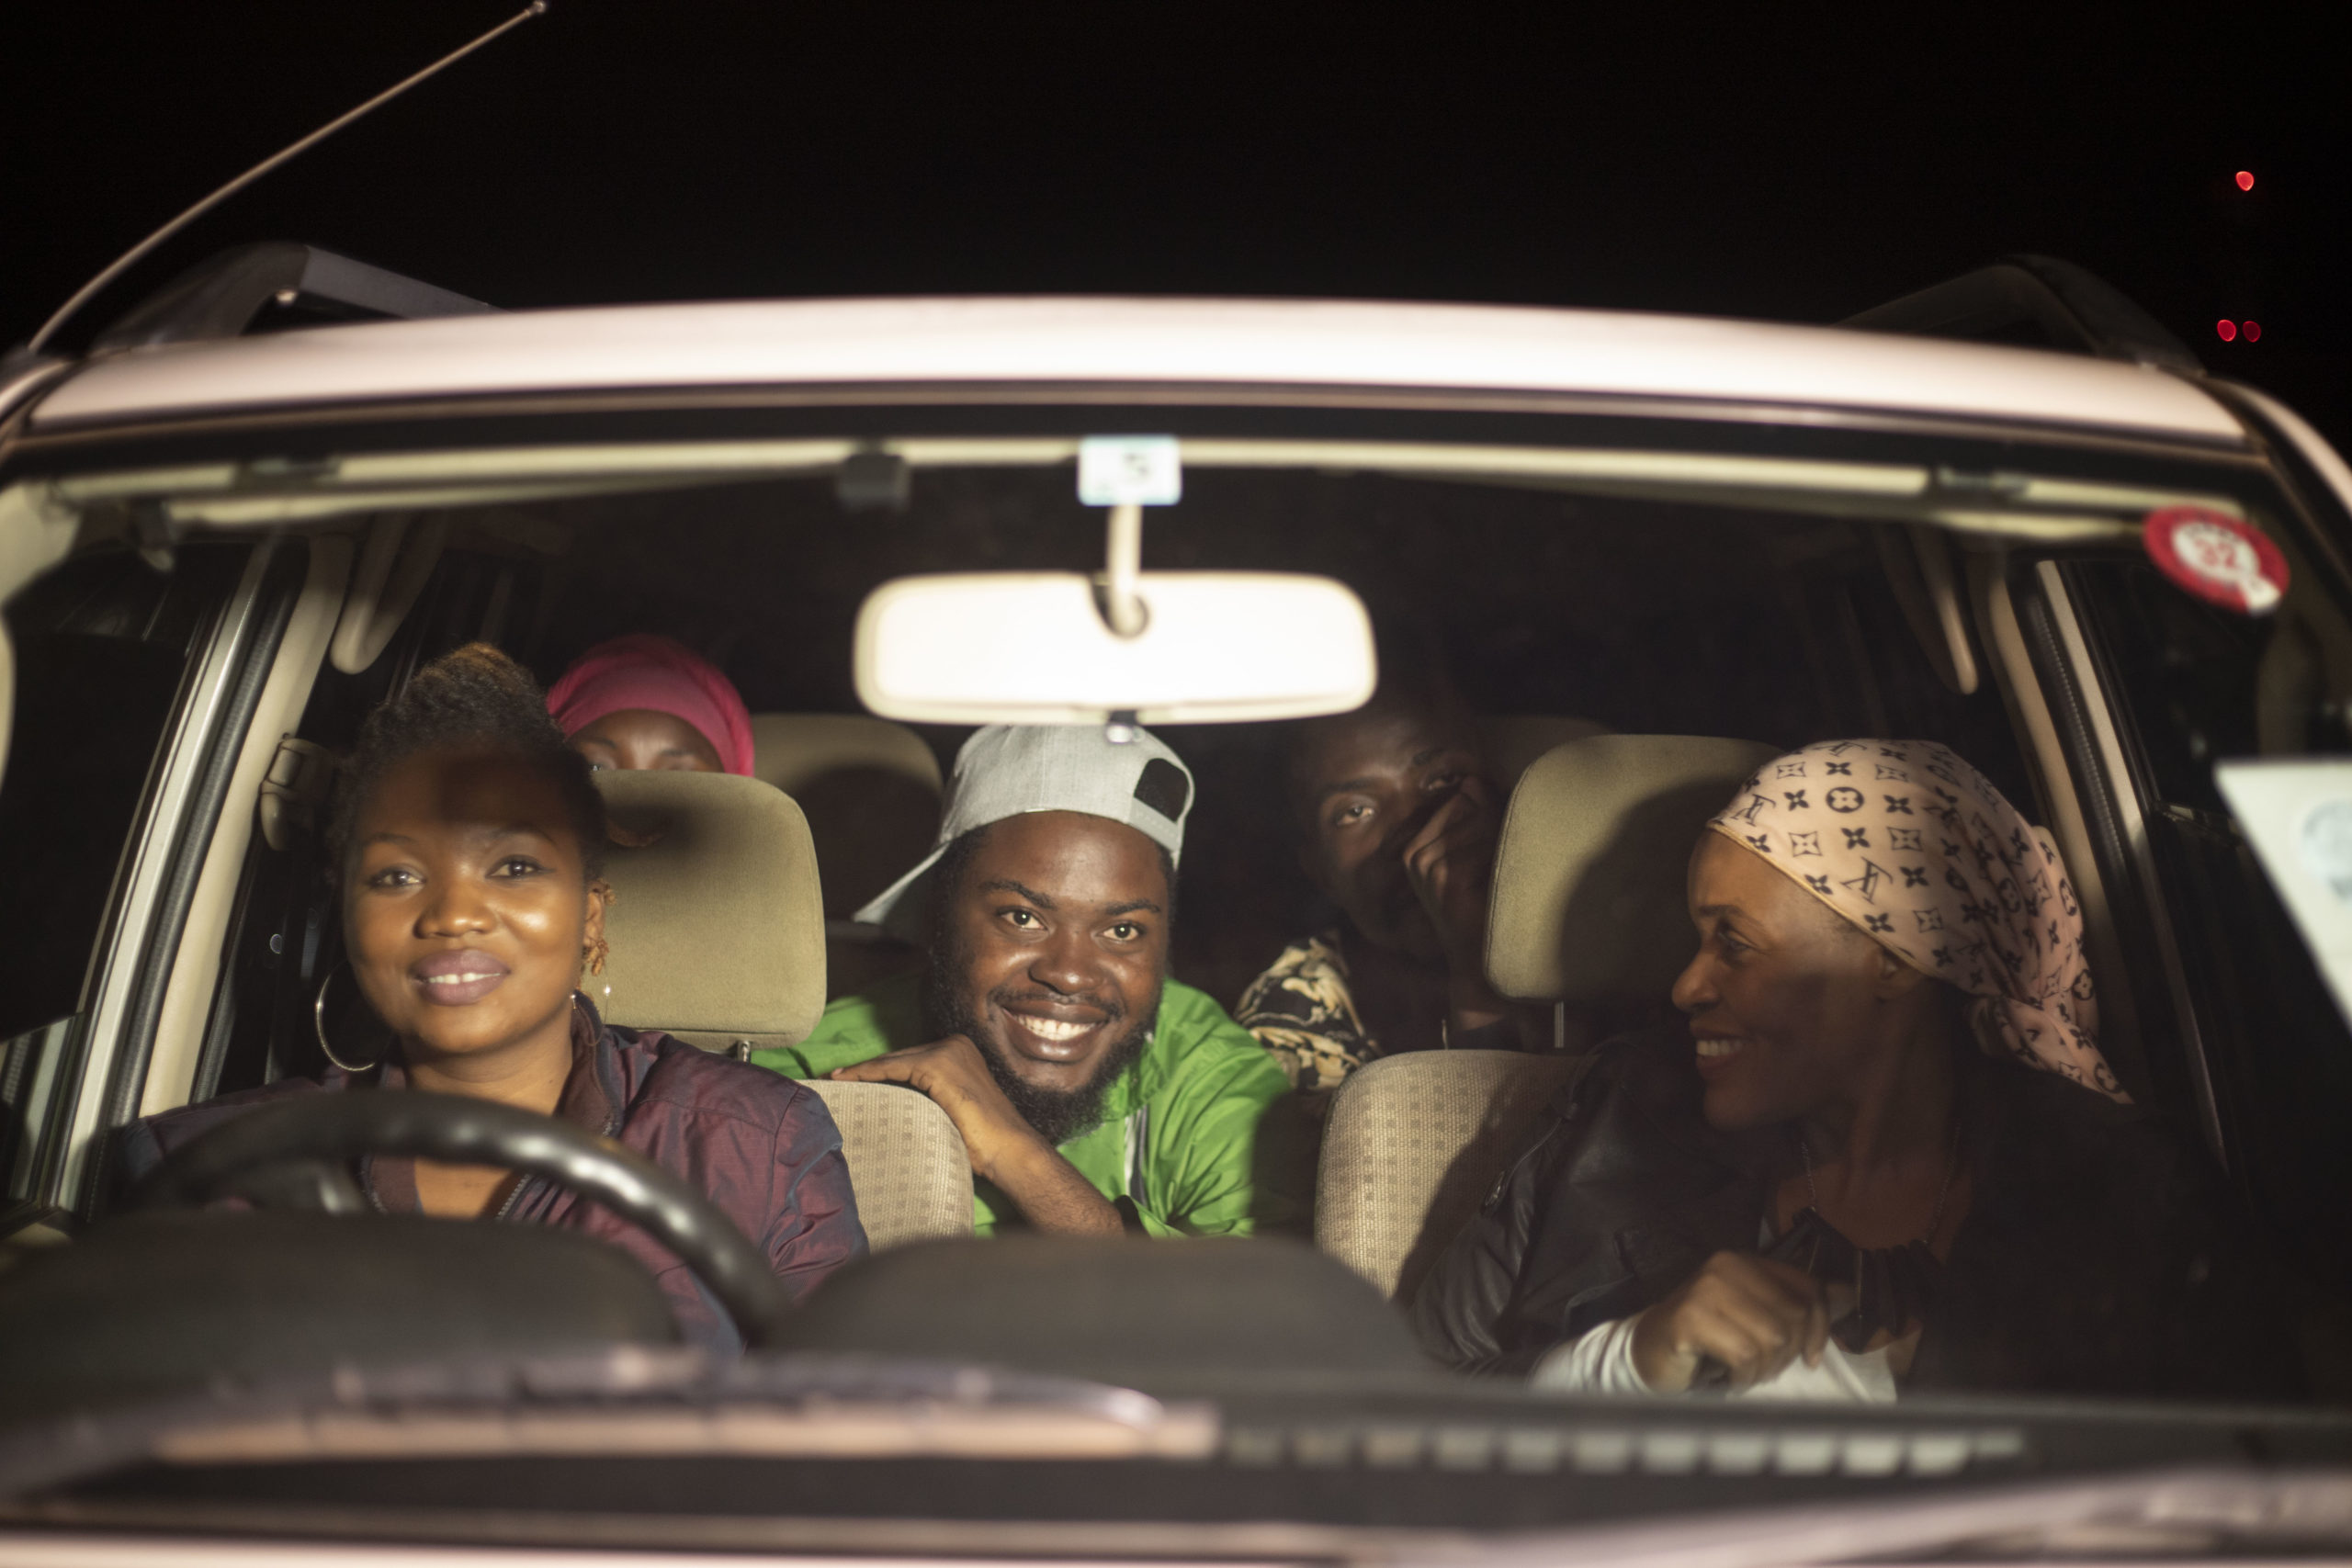 WHAT WILL HAPPEN AT THE BICC DRIVE-IN CINEMA- INSIGHTS